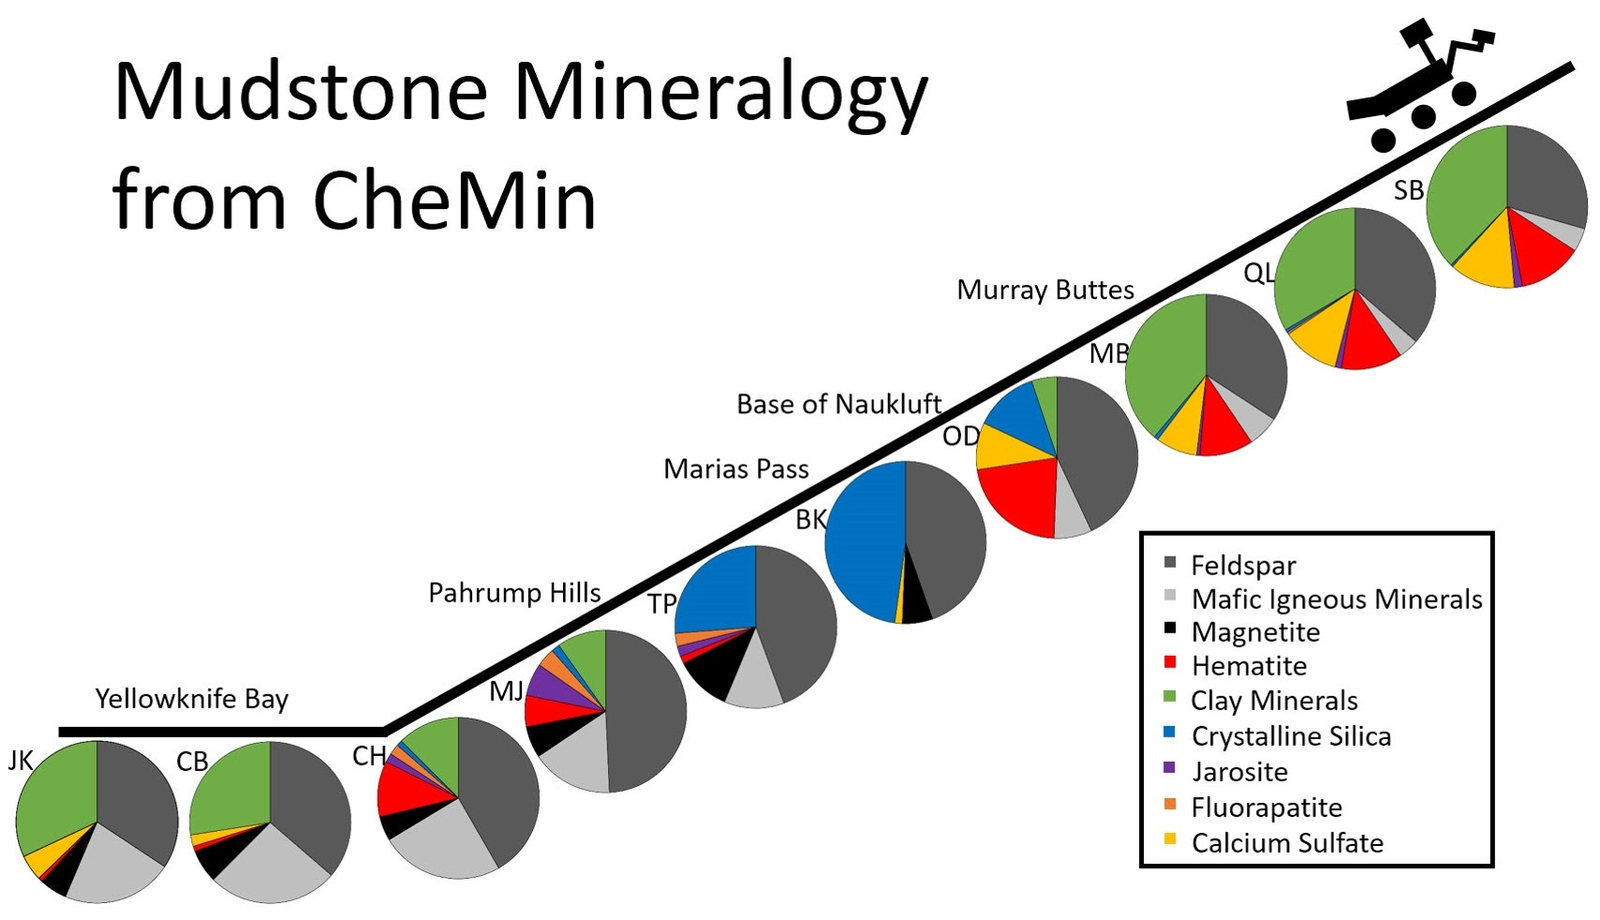 This series of pie charts shows similarities and differences in the mineral composition of mudstone at 10 sites where NASA's Curiosity Mars rover collected rock-powder samples and analyzed them with the rover's Chemistry and Mineralogy (CheMin) instrument.